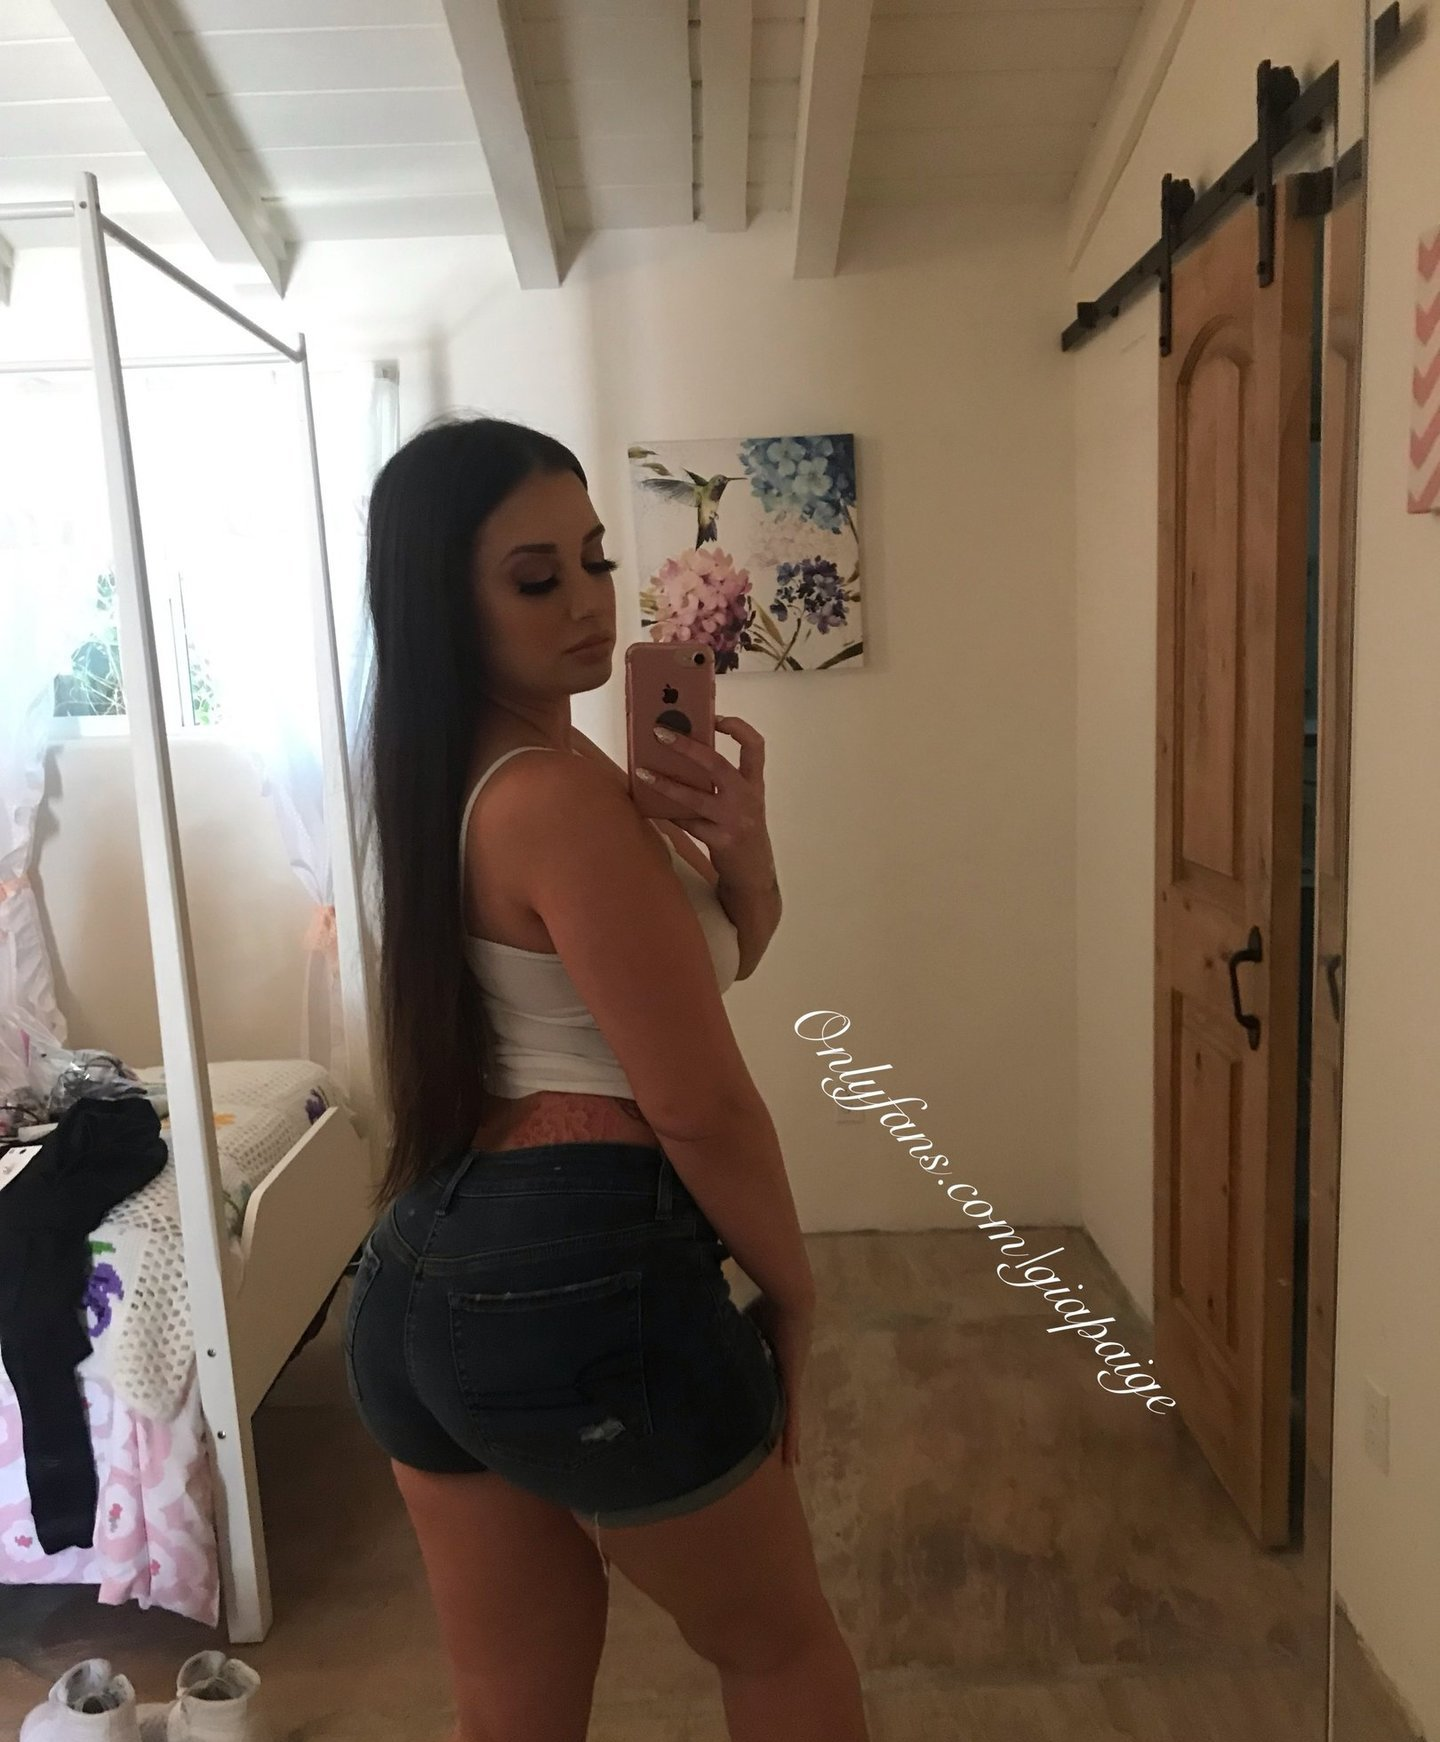 Gia Paige Giapaigex Onlyfans Nude Leaks 0018